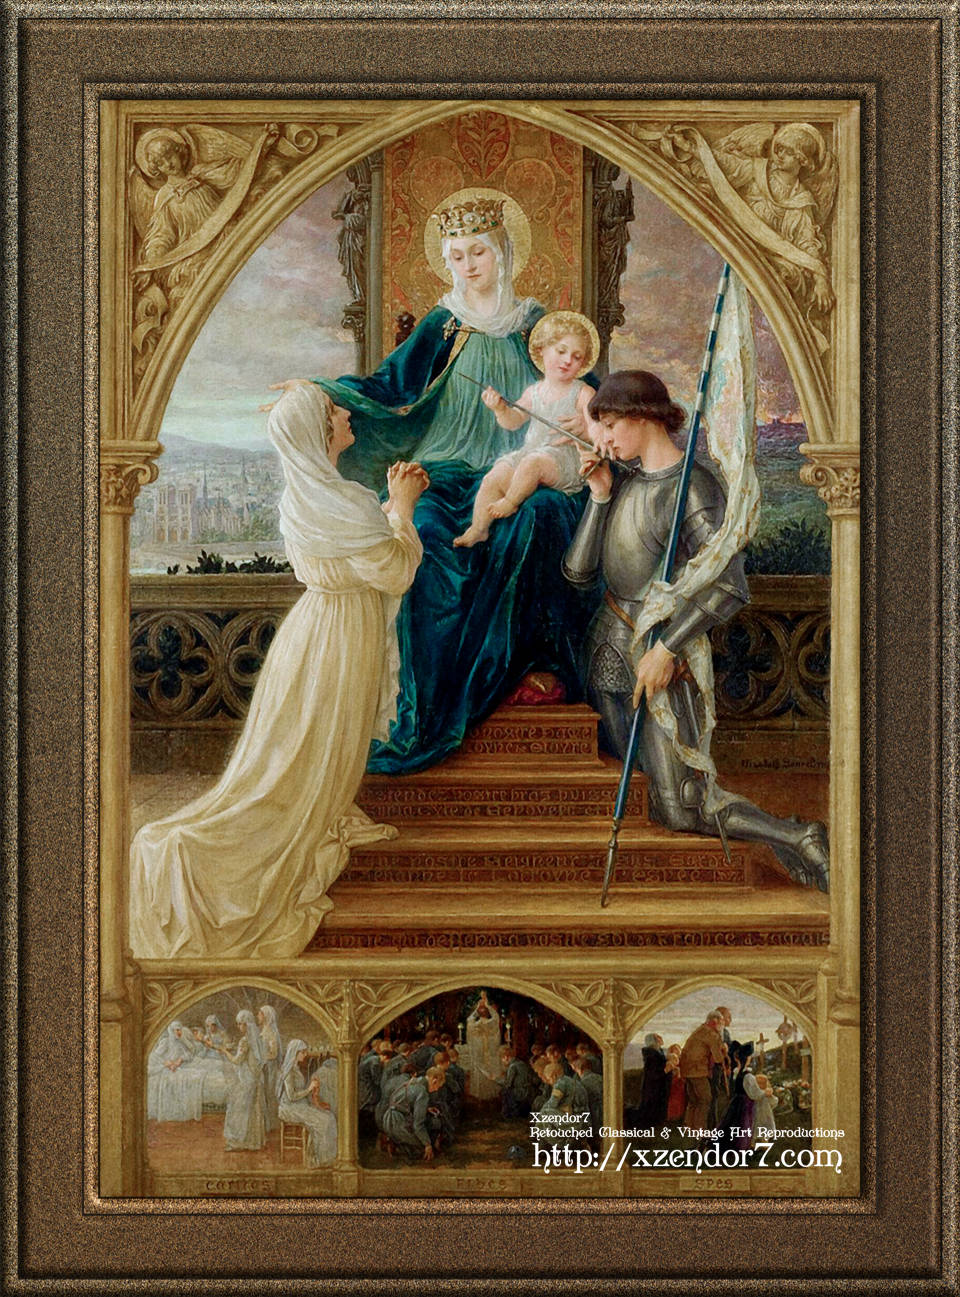 Madonna and Child Seated Between St. Genevieve and Joan Of Arc by Élisabeth Sonrel